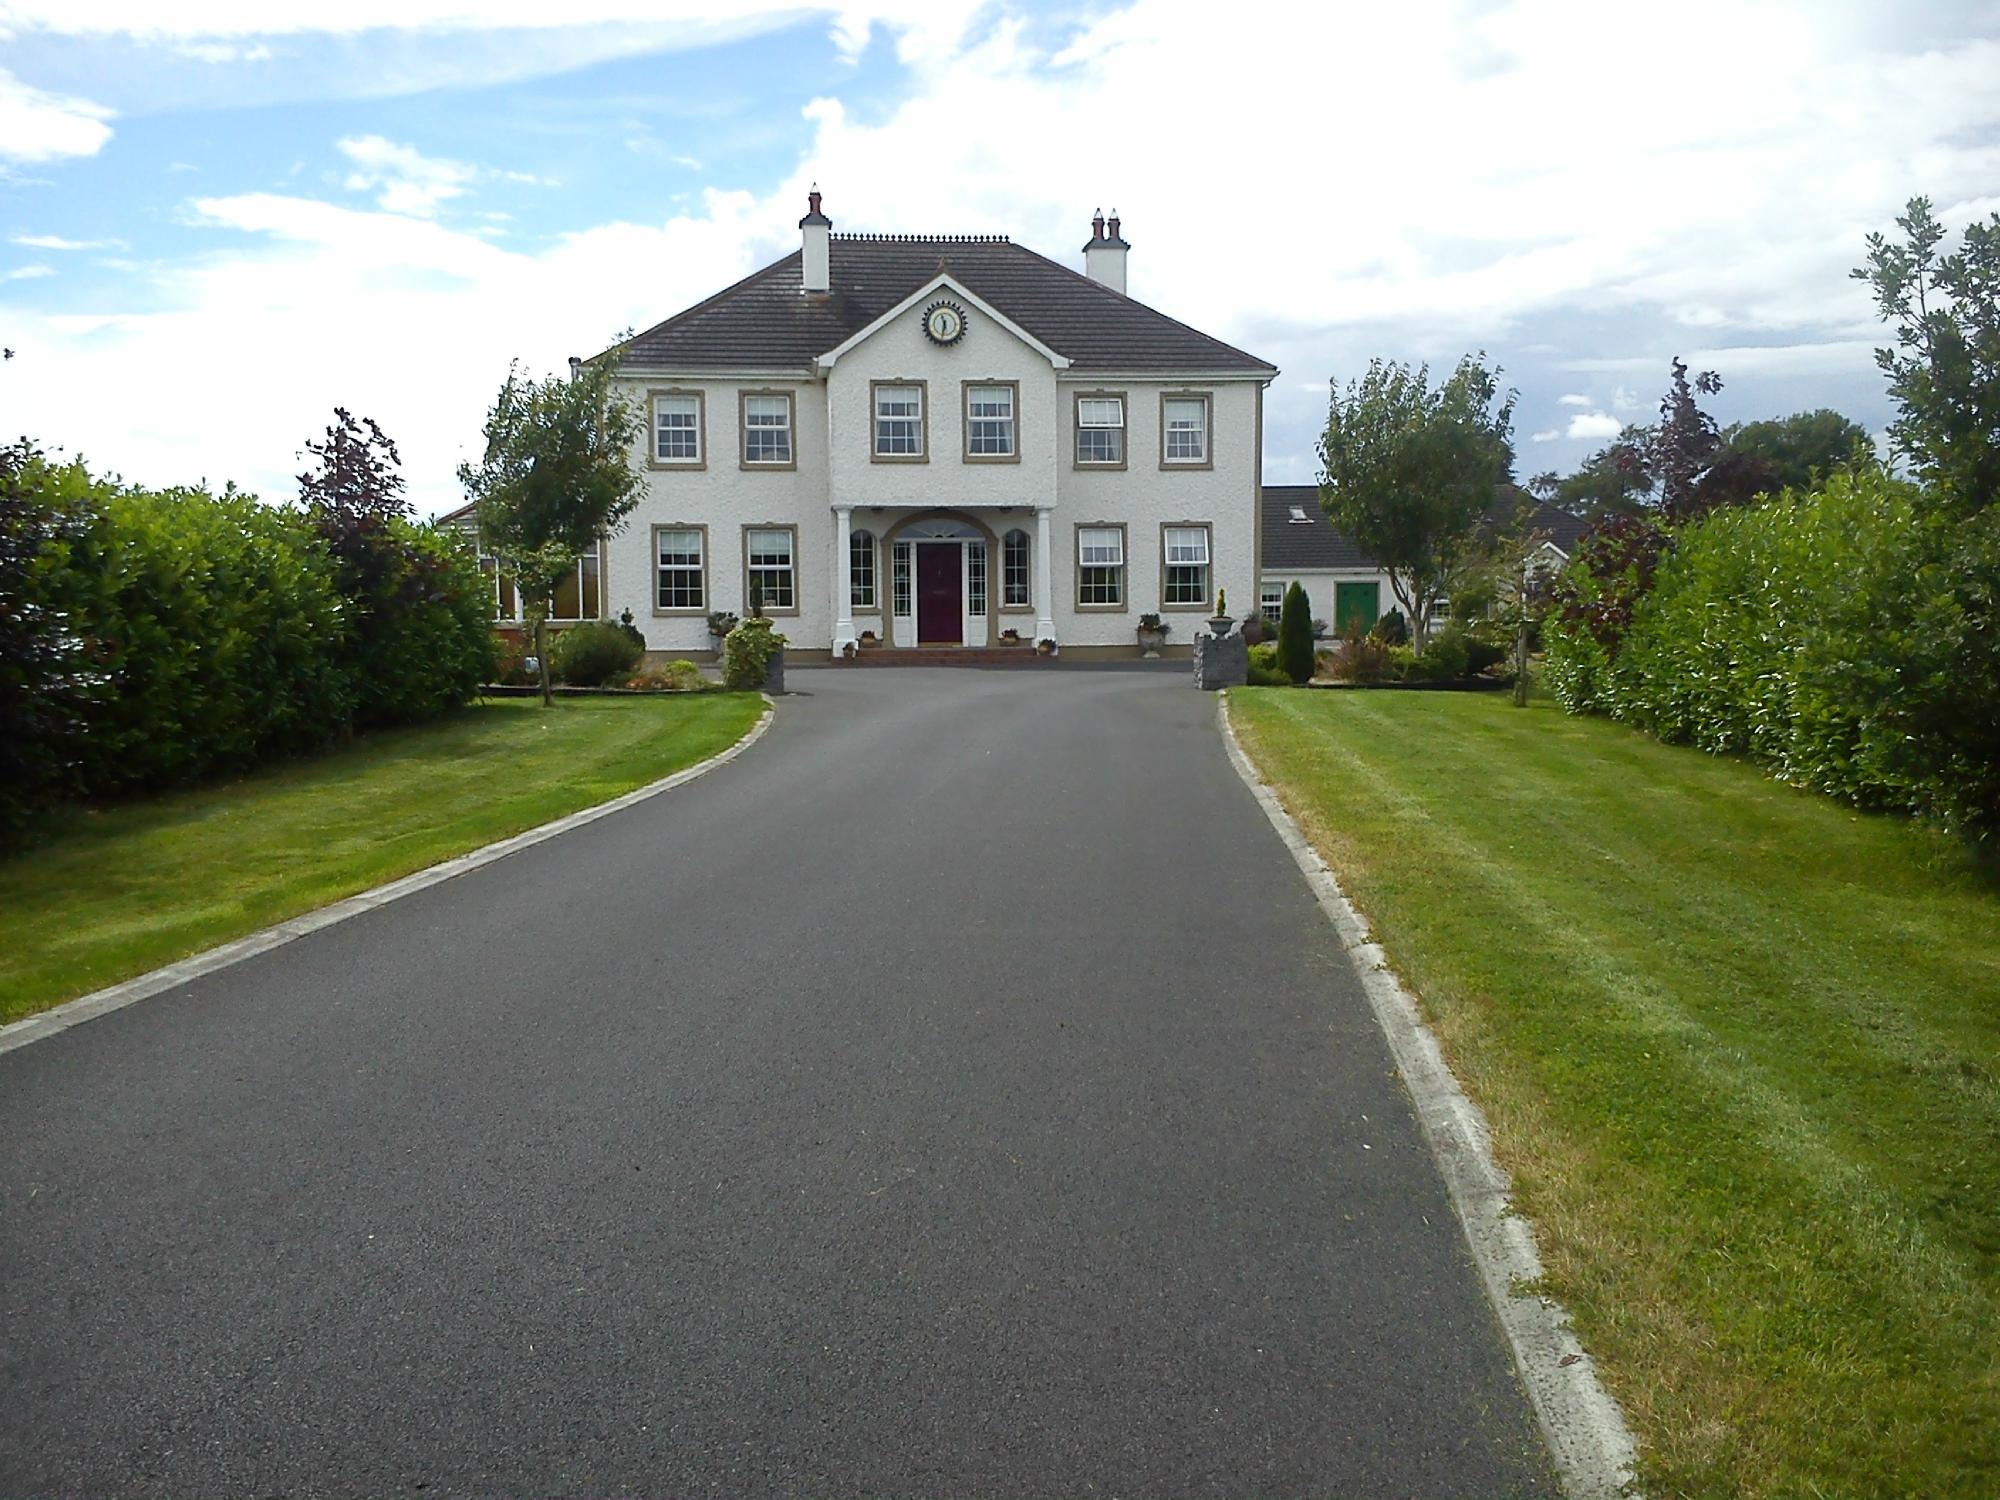 Grennan's Country House